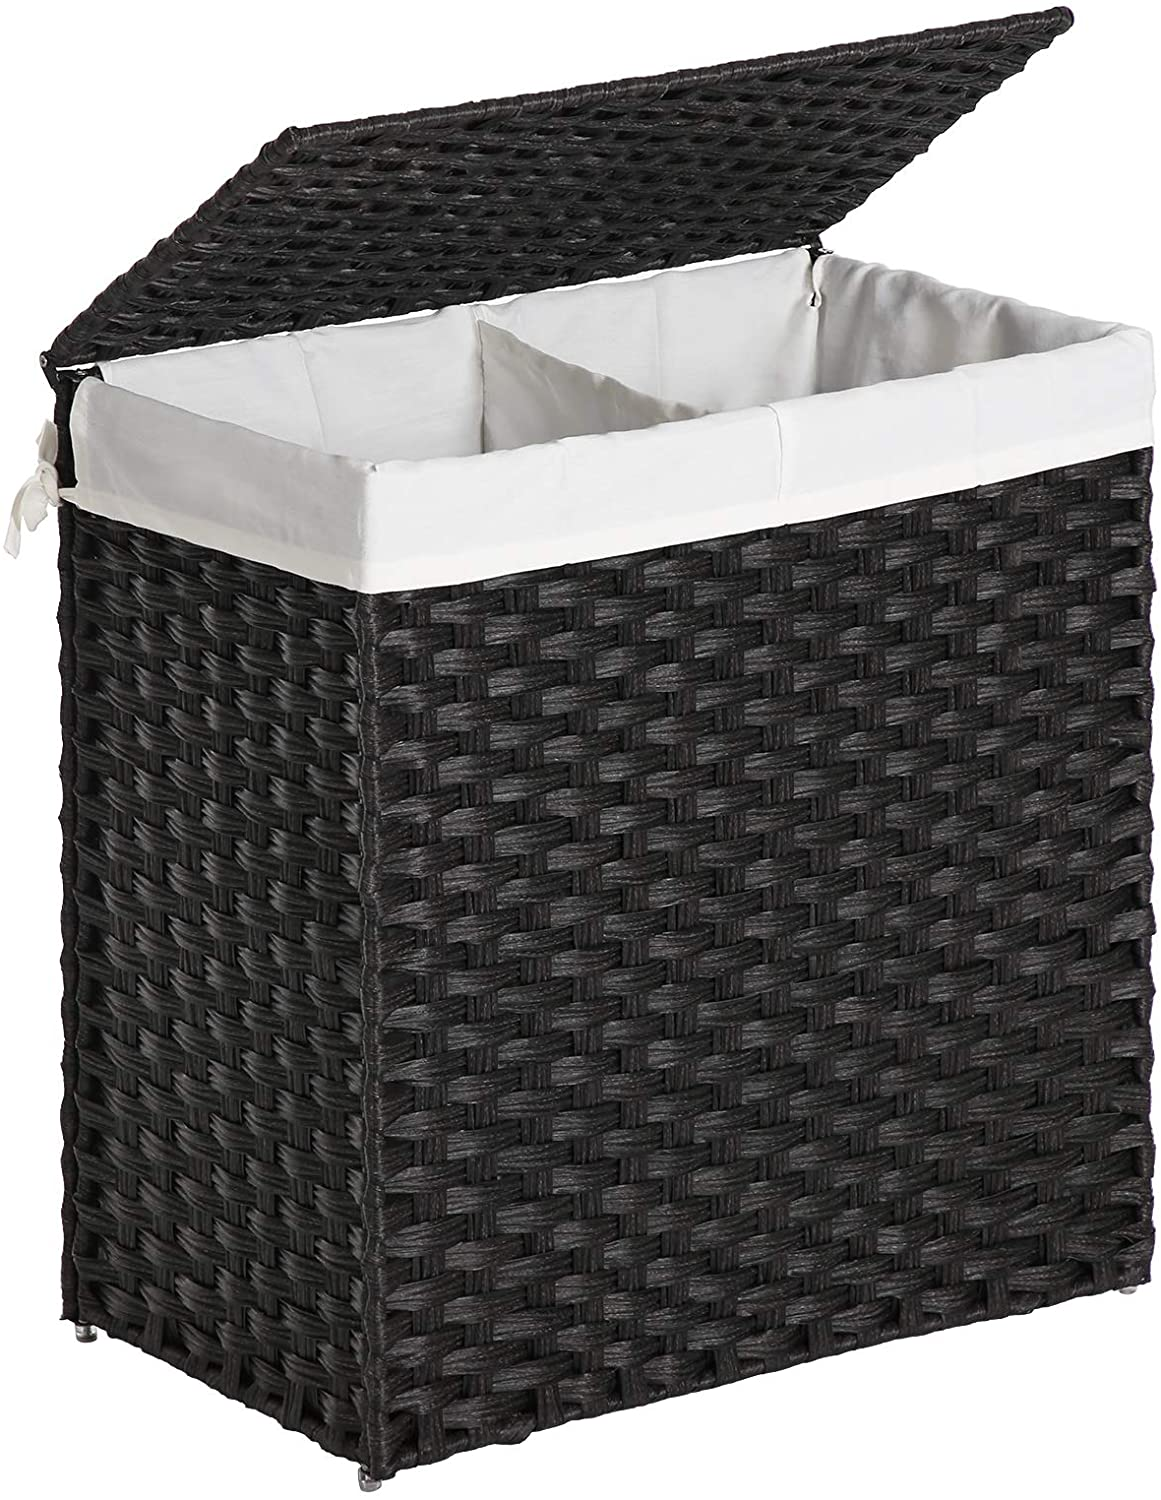 SONGMICS Divided Laundry Hamper, Handwoven  Laundry Basket, Synthetic Rattan Clothes  Hamper with Removable Liner Bag, Black ULCB52BK